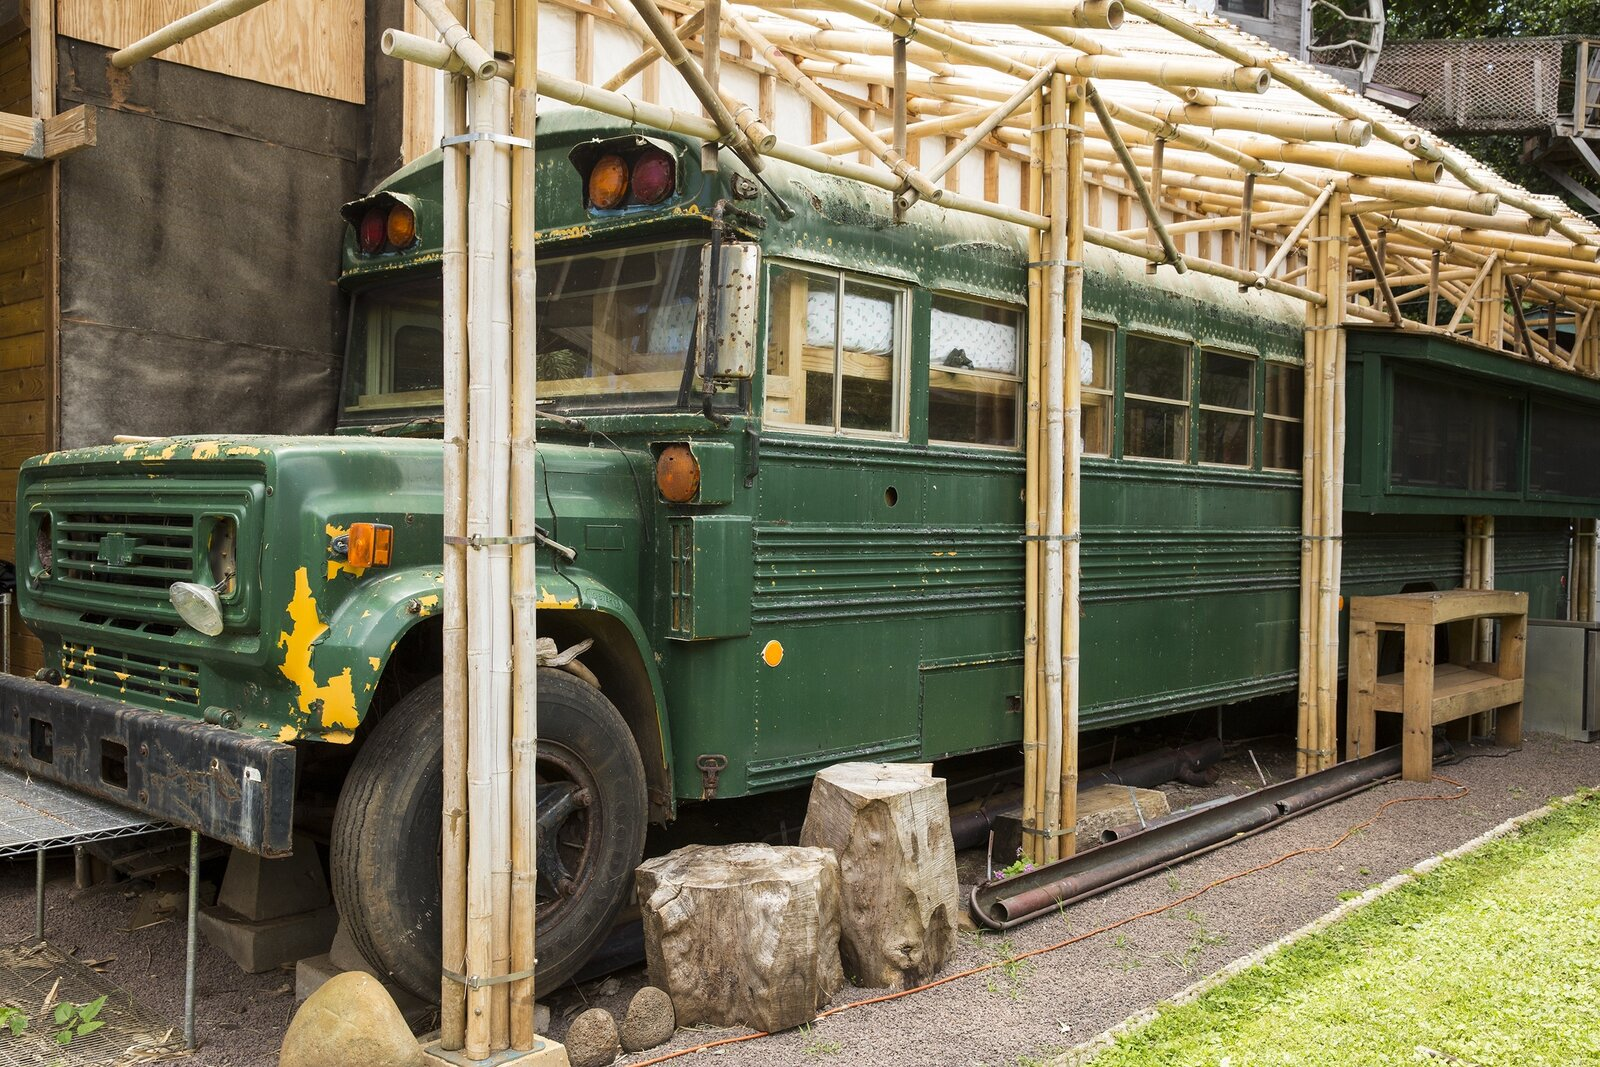 Photo 6 of 10 in These Legendary Surfers' Converted School Bus Connects to a Three-Story Tree House on Hawaii